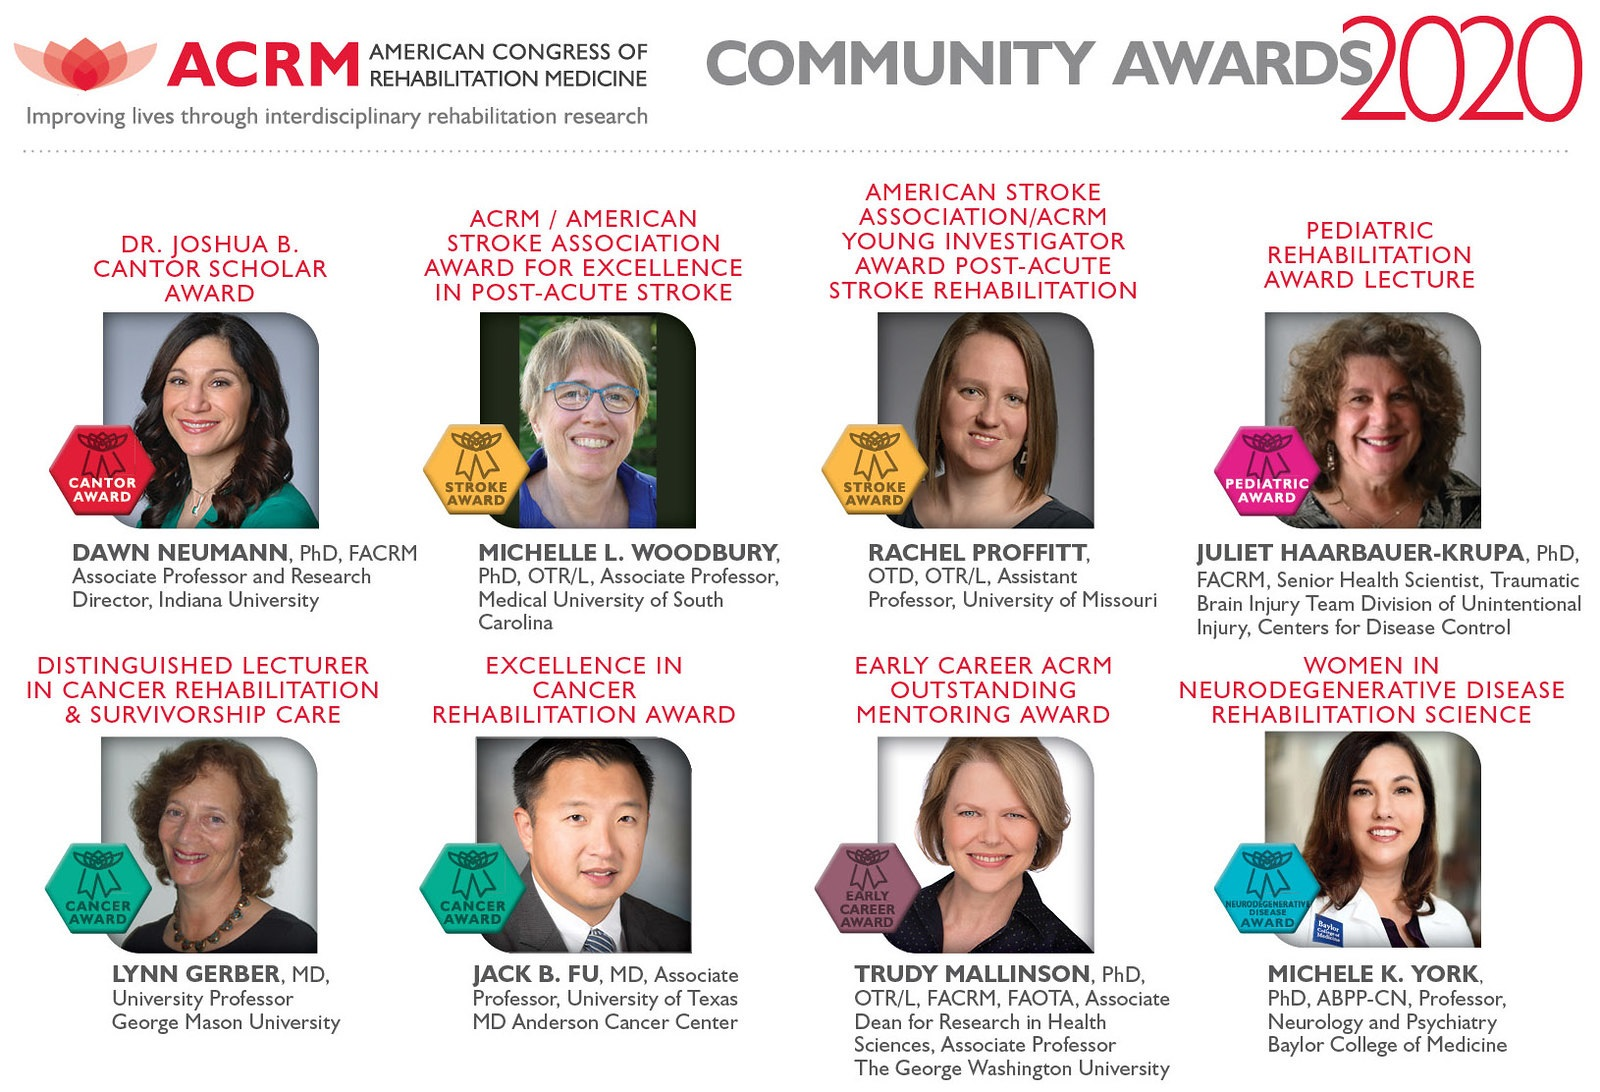 ACRM 2020 Awards sponsored by ACRM Community Groups